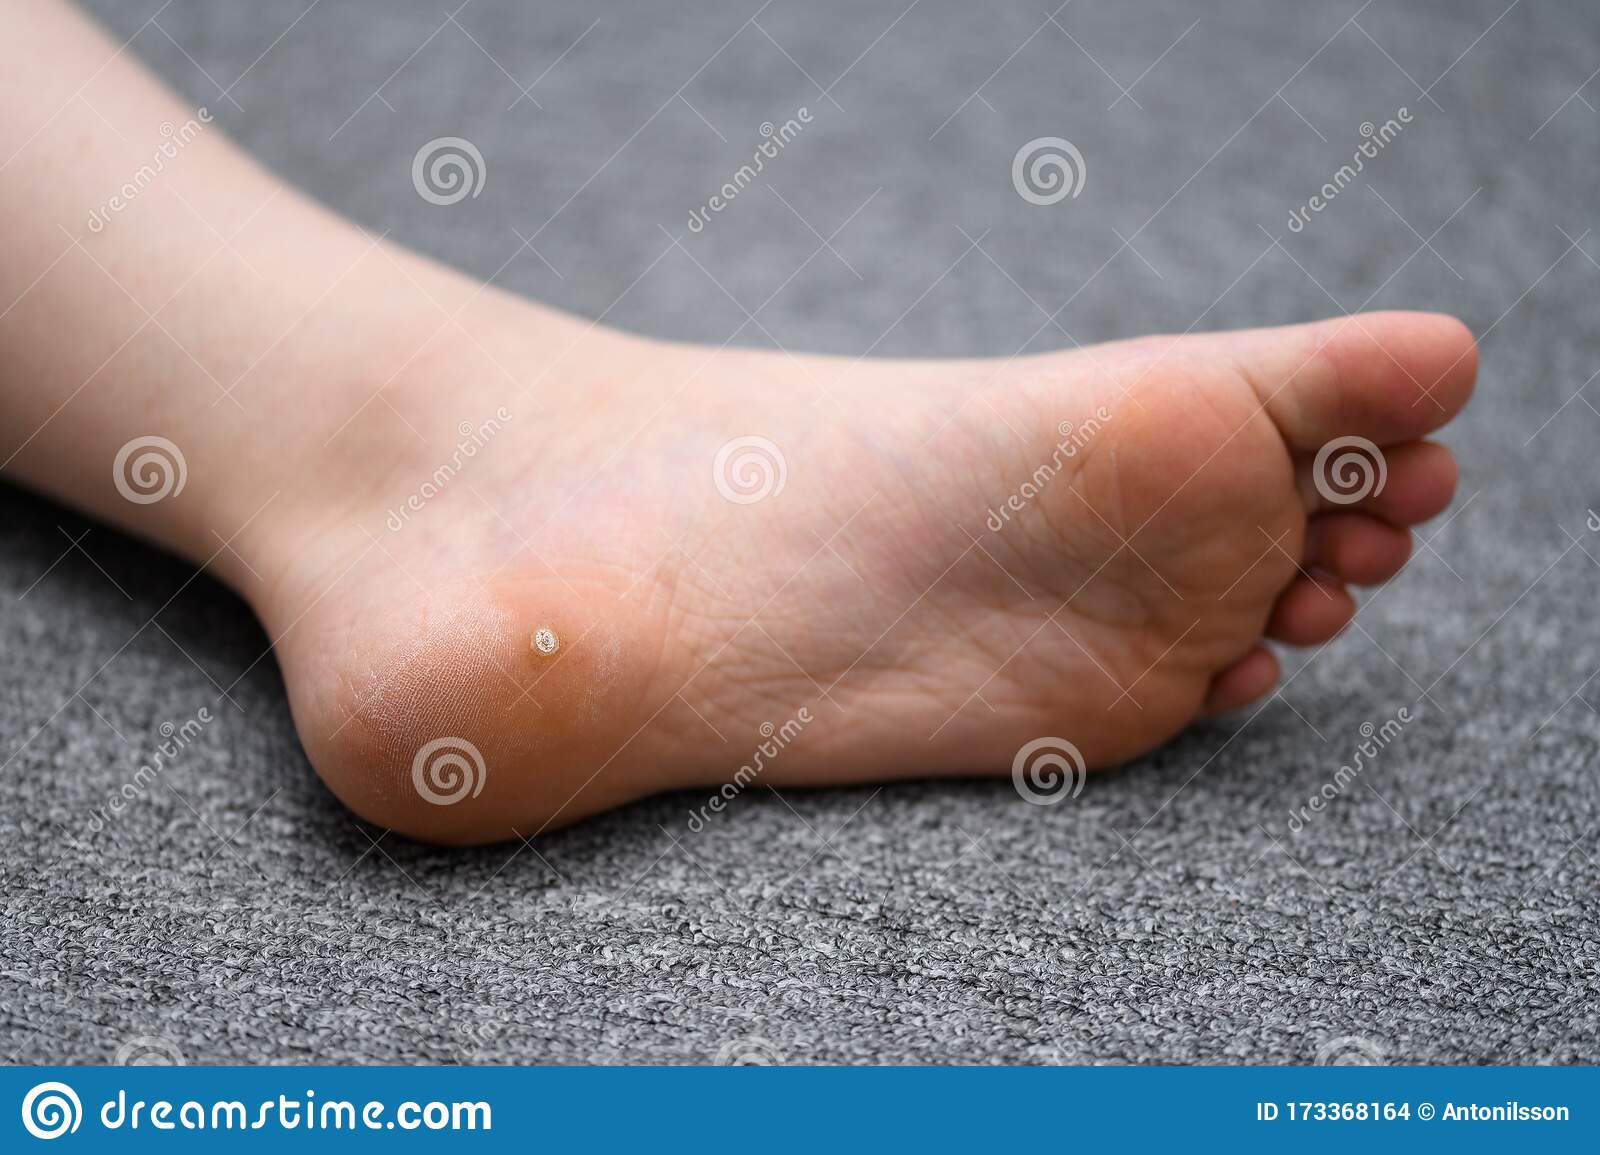 wart on foot baby